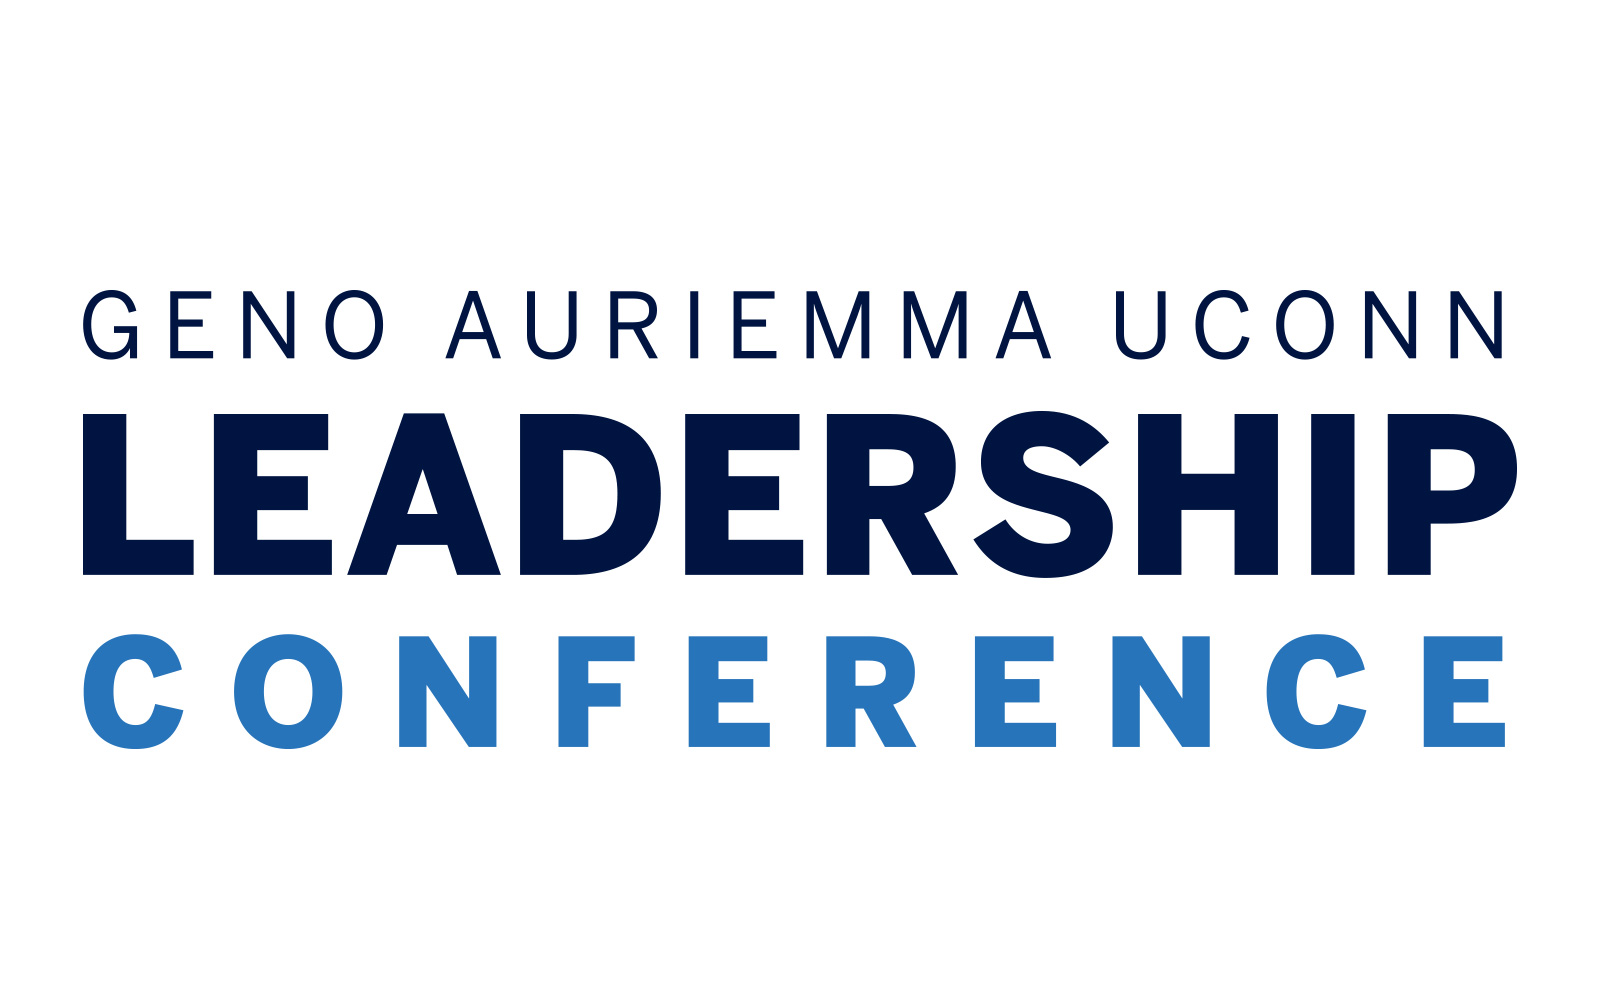 Geno Auriemma UConn Leadership Conference